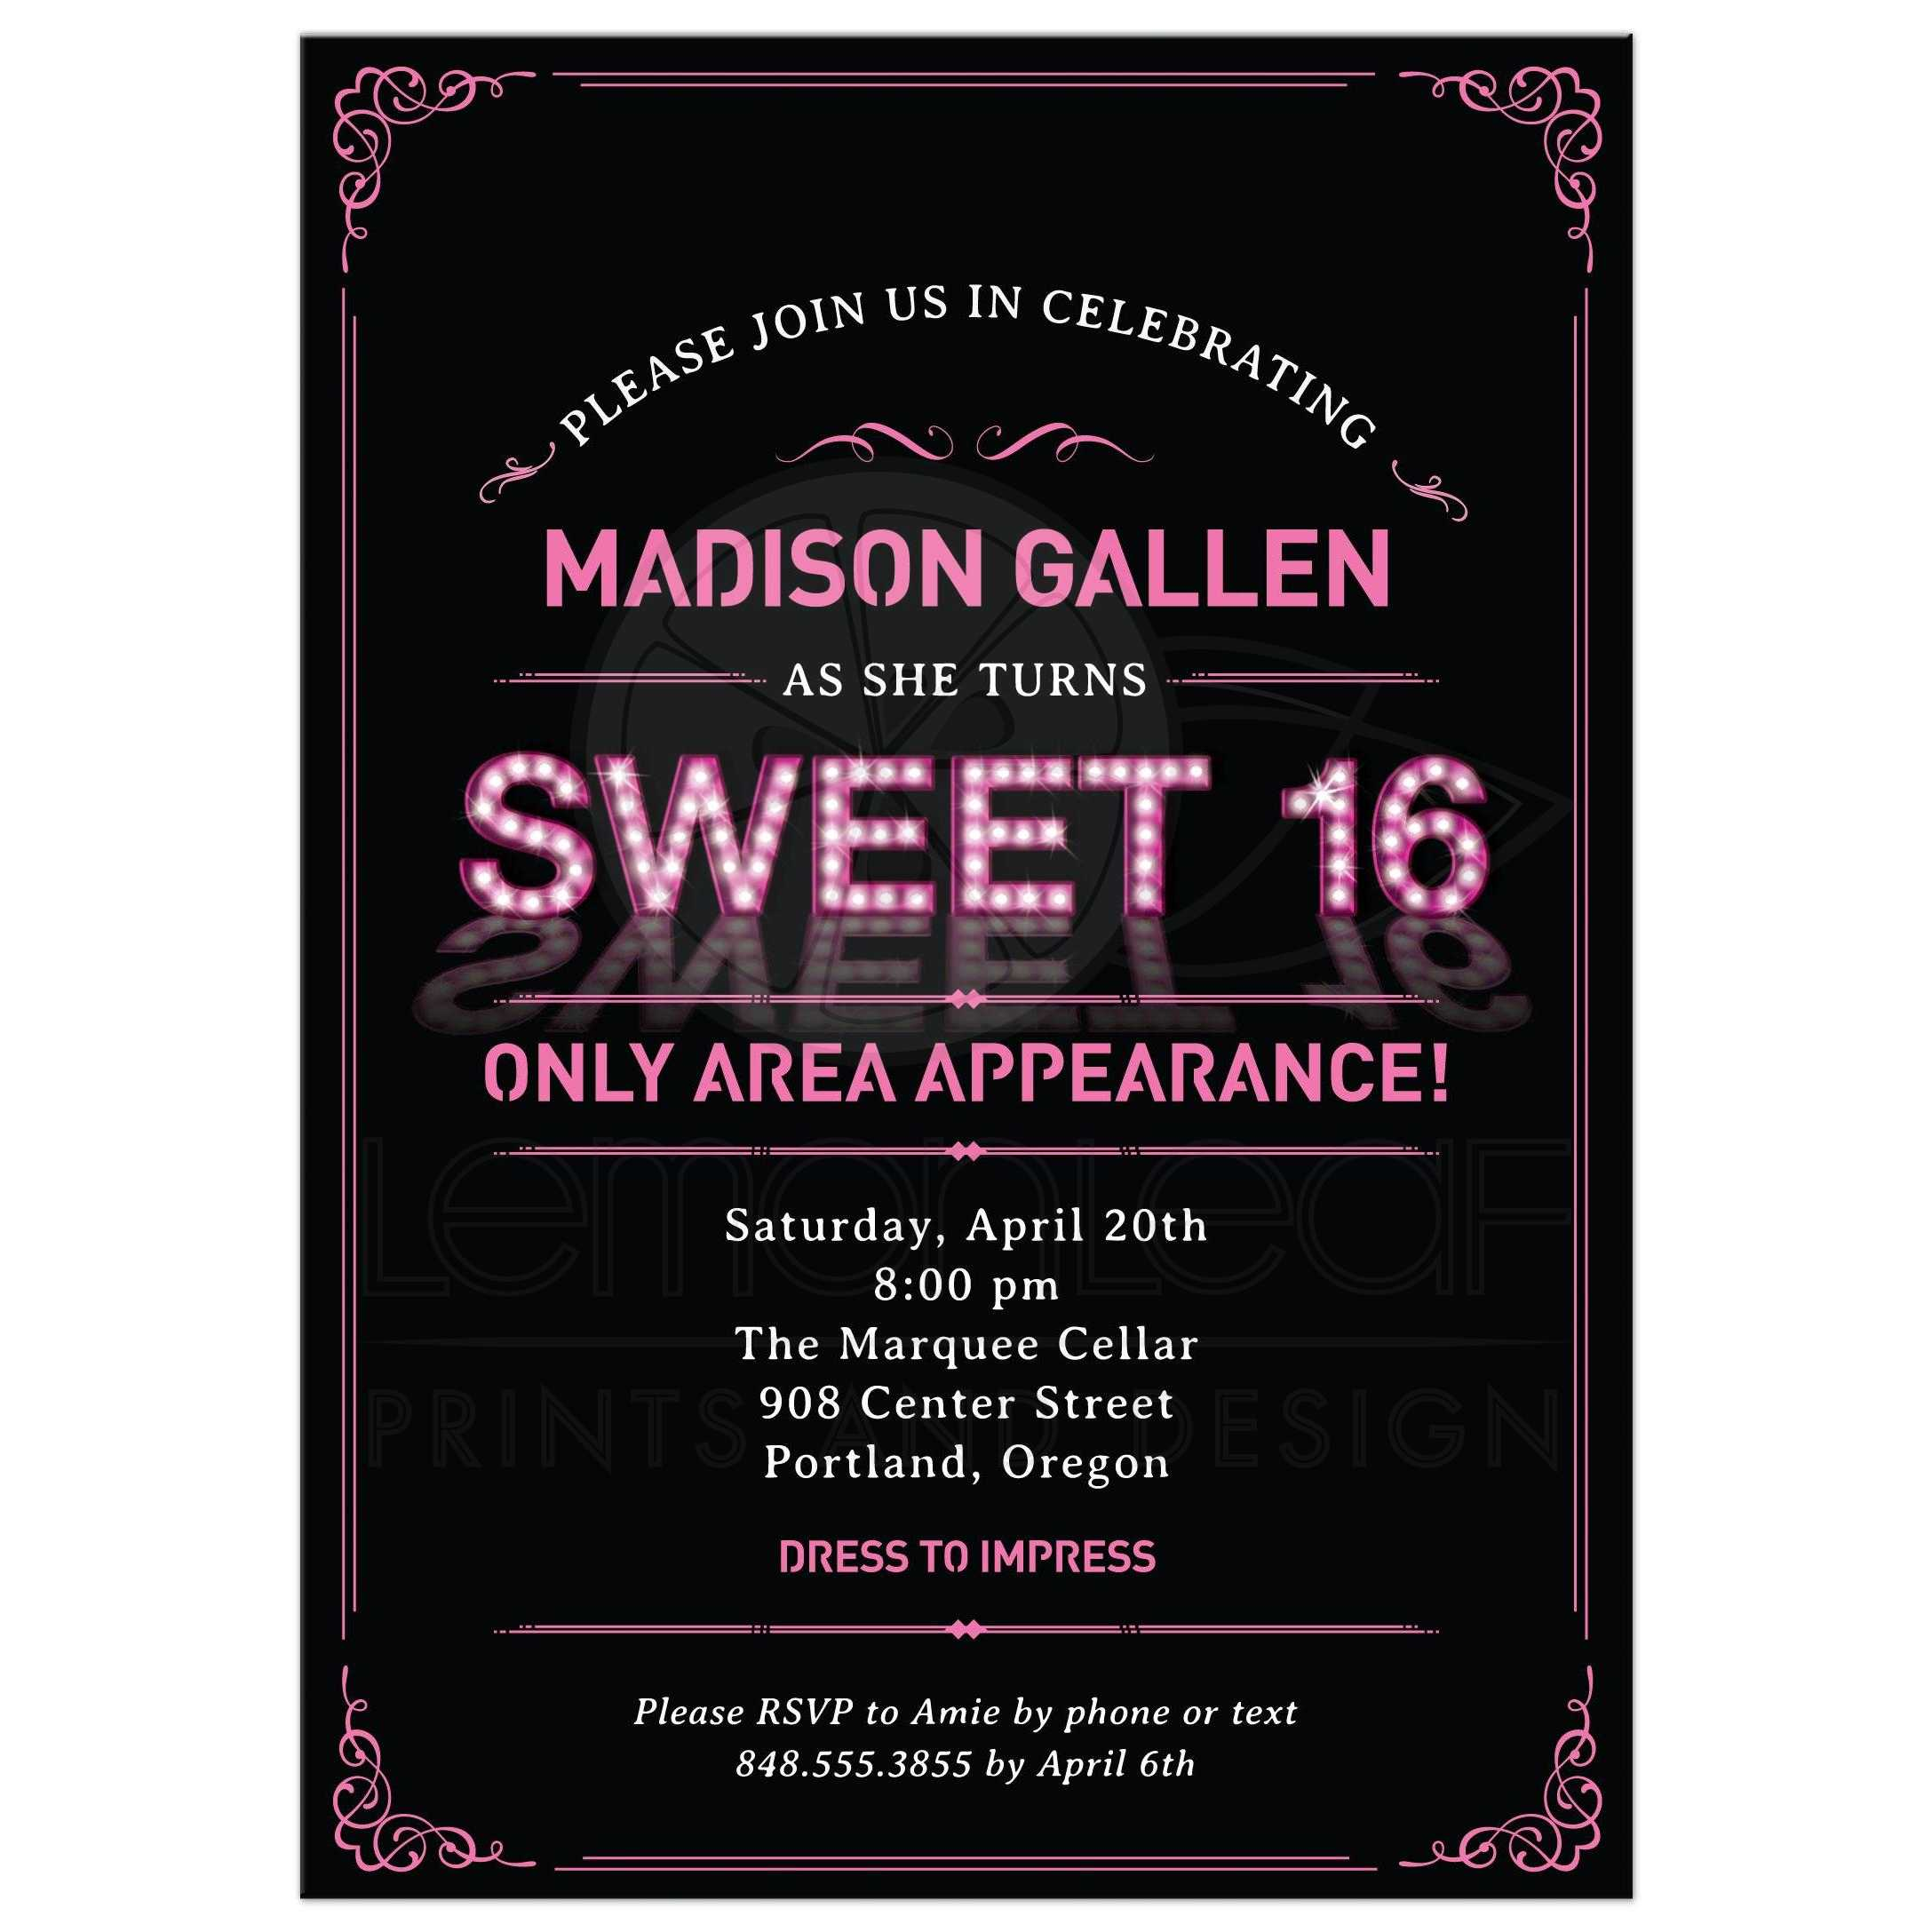 Marquee lights sweet 16 party invitation pink marquee lights sweet 16 party invitation monicamarmolfo Image collections